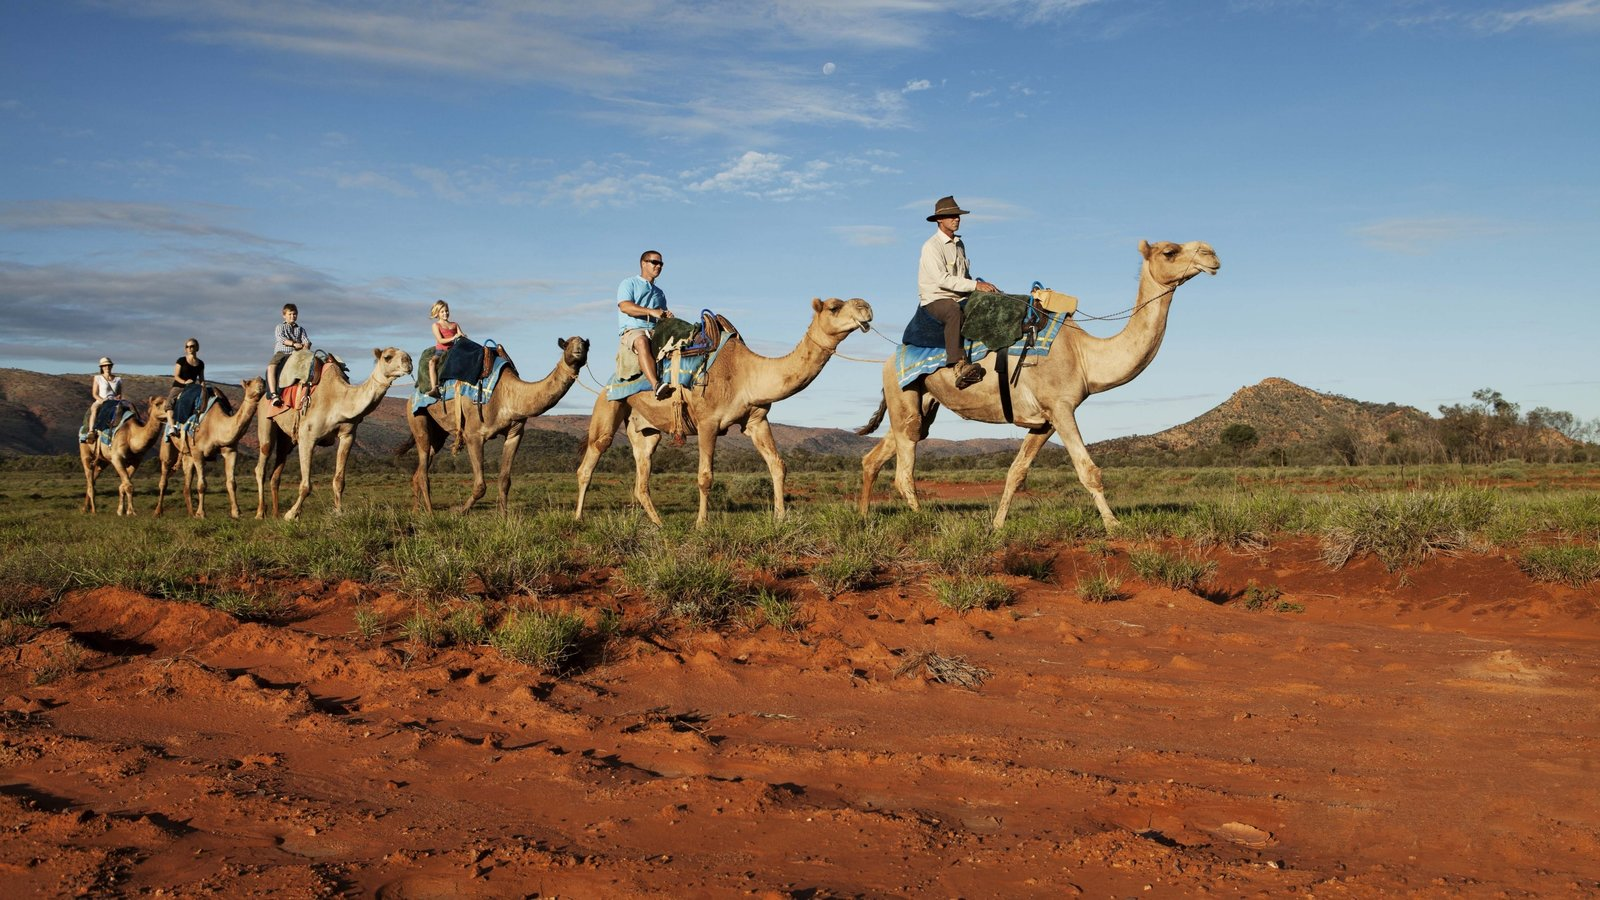 Alice Springs which includes horseriding, land animals and desert views